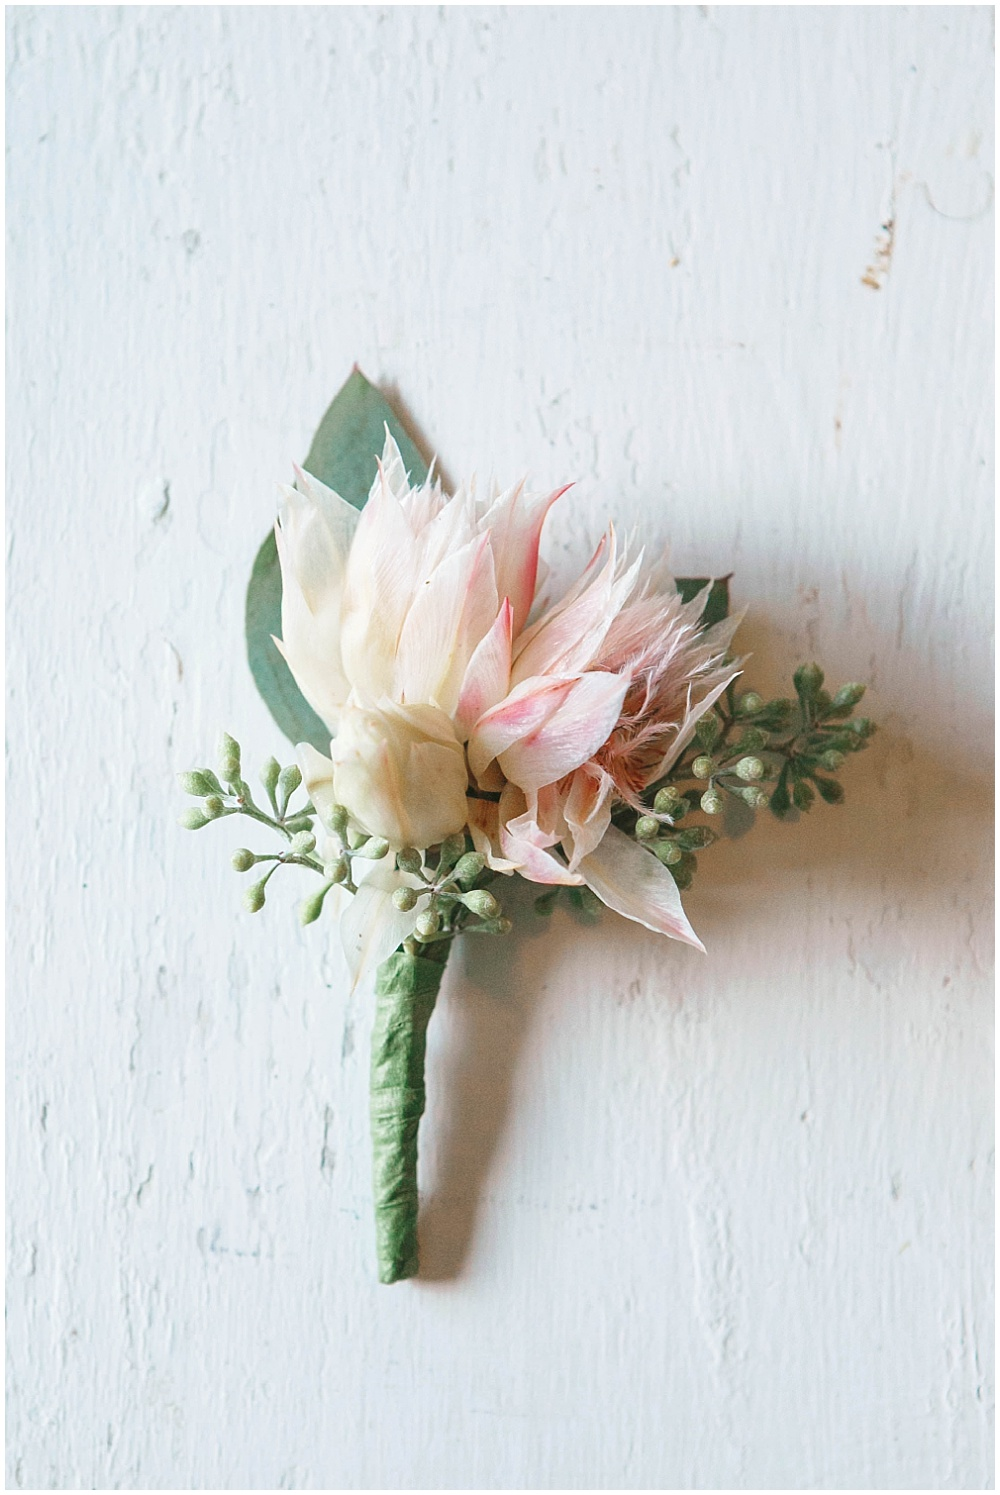 Blush and green groom's boutonniere | Family Farm wedding by SB Childs Photography & Jessica Dum Wedding Coordination